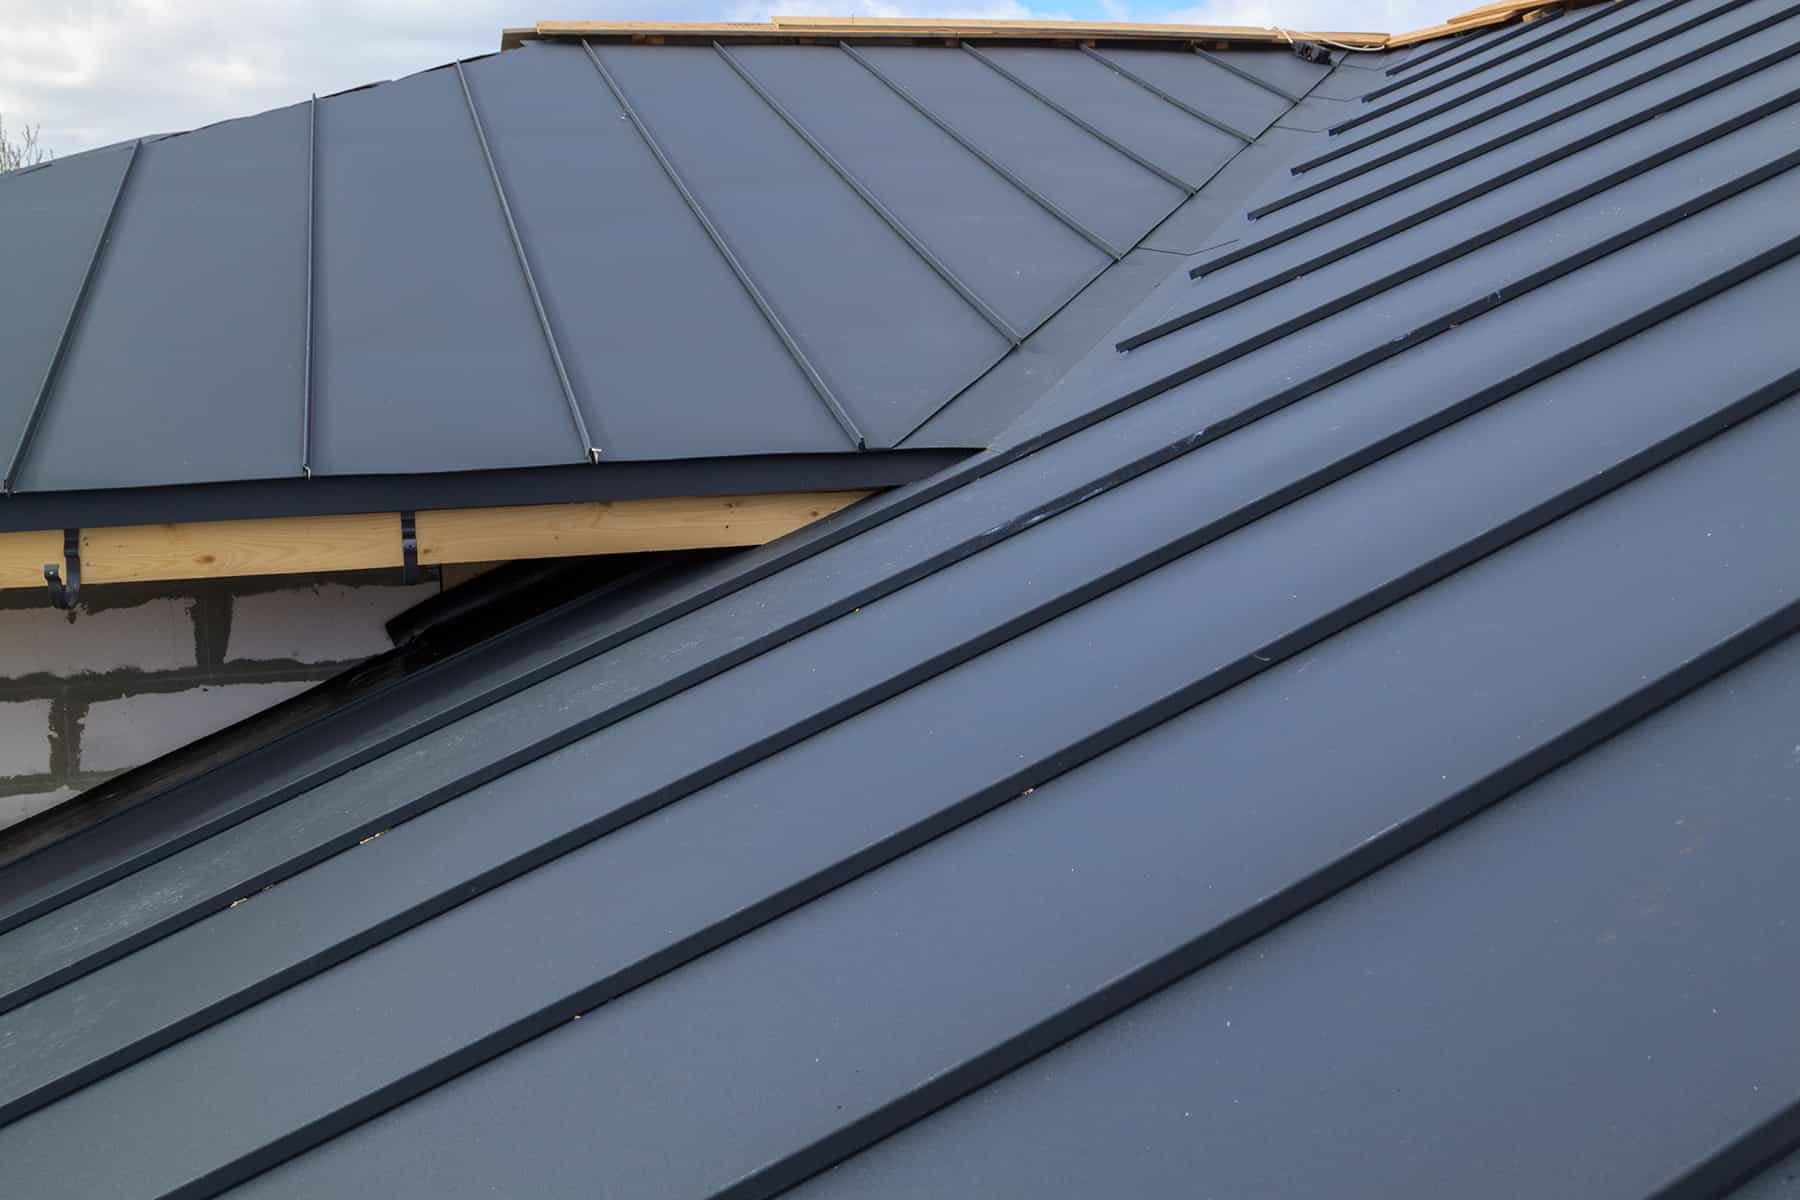 filing a homeowners insurance claim for roof damage